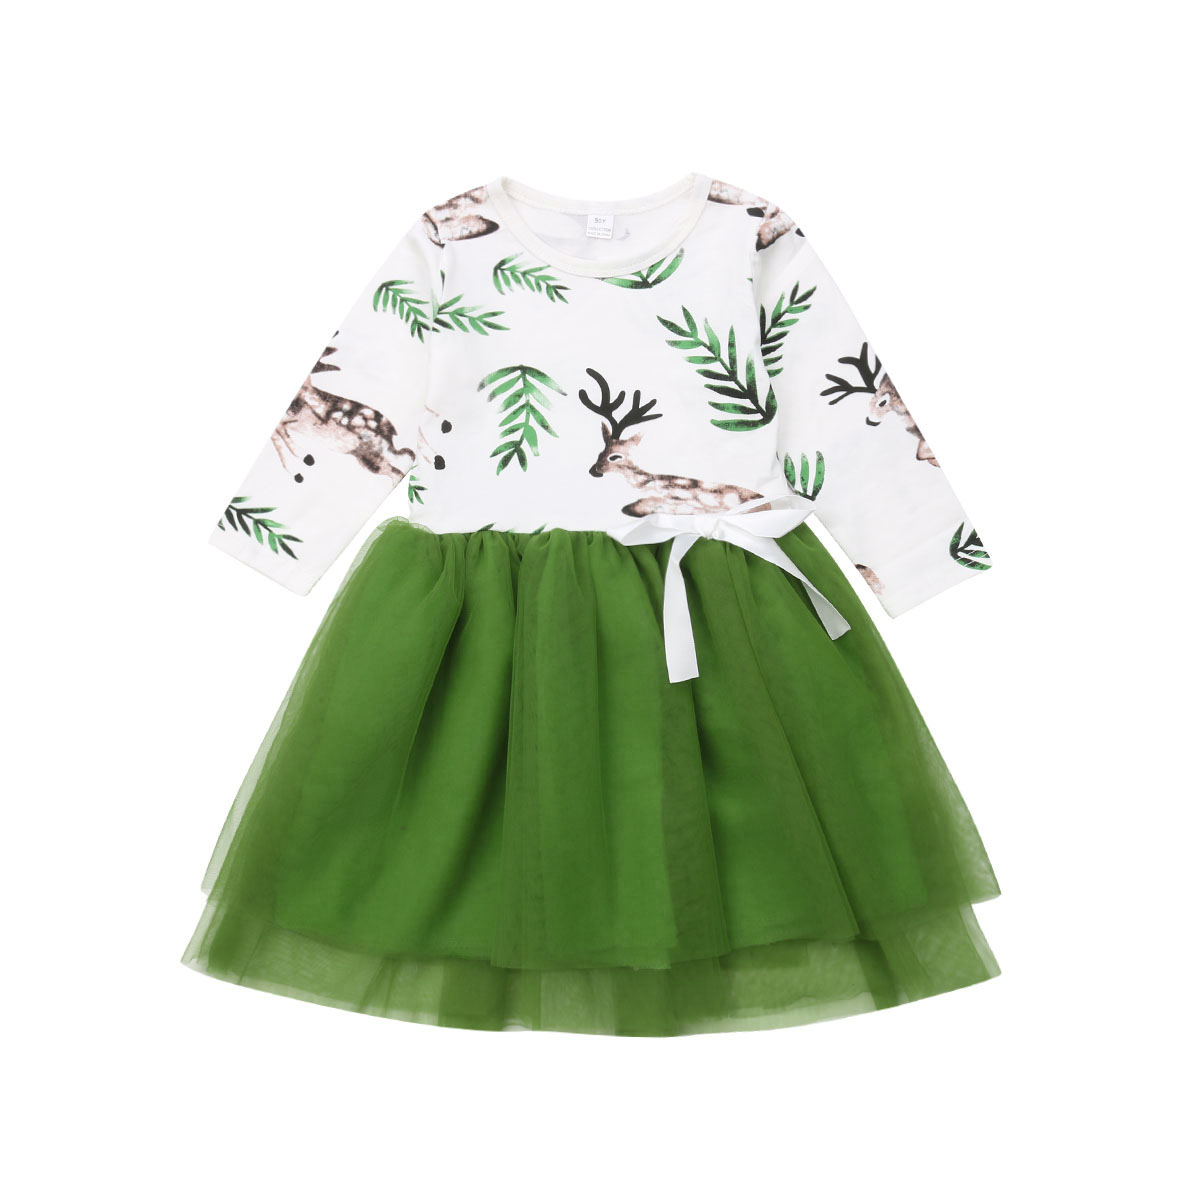 Toddler Baby Girls Kids Clothing Dresses Casual Party Mini Tiered Cute Ruffles Princess Dress Christmas Clothes Girl 2-7T toddler autumn dress kids girls clothing dress jeans denim short sleeve ruffles tiered patchwork tutu mini dresses girl 2 7t